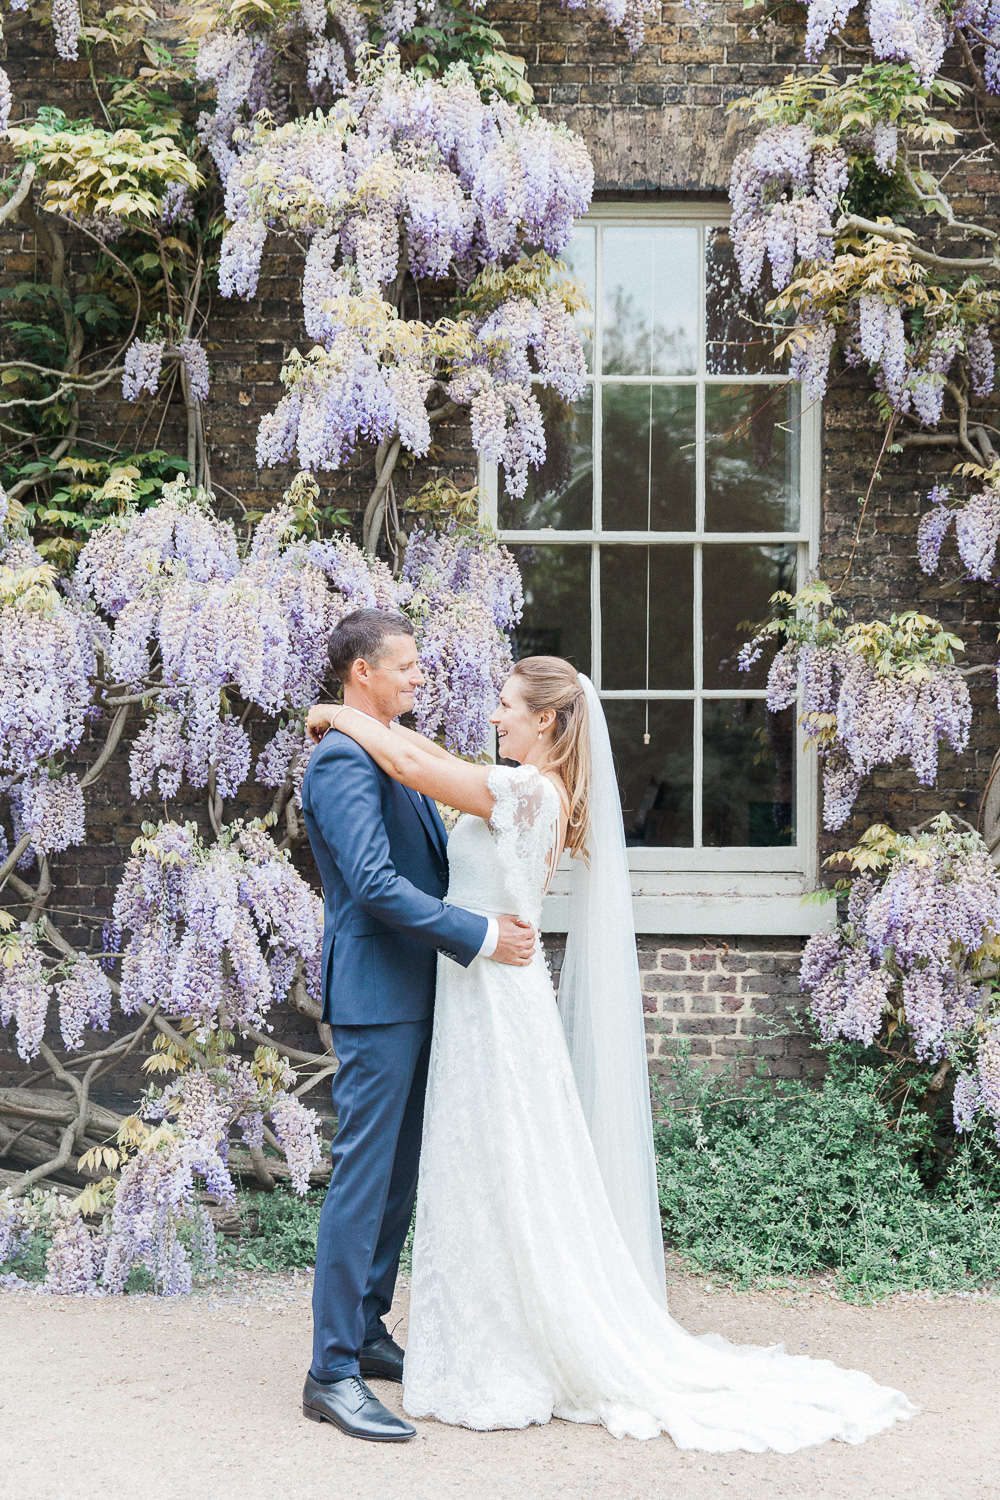 Bride and groom against a backdrop of whisteria at Fulham Palace wedding venue in London